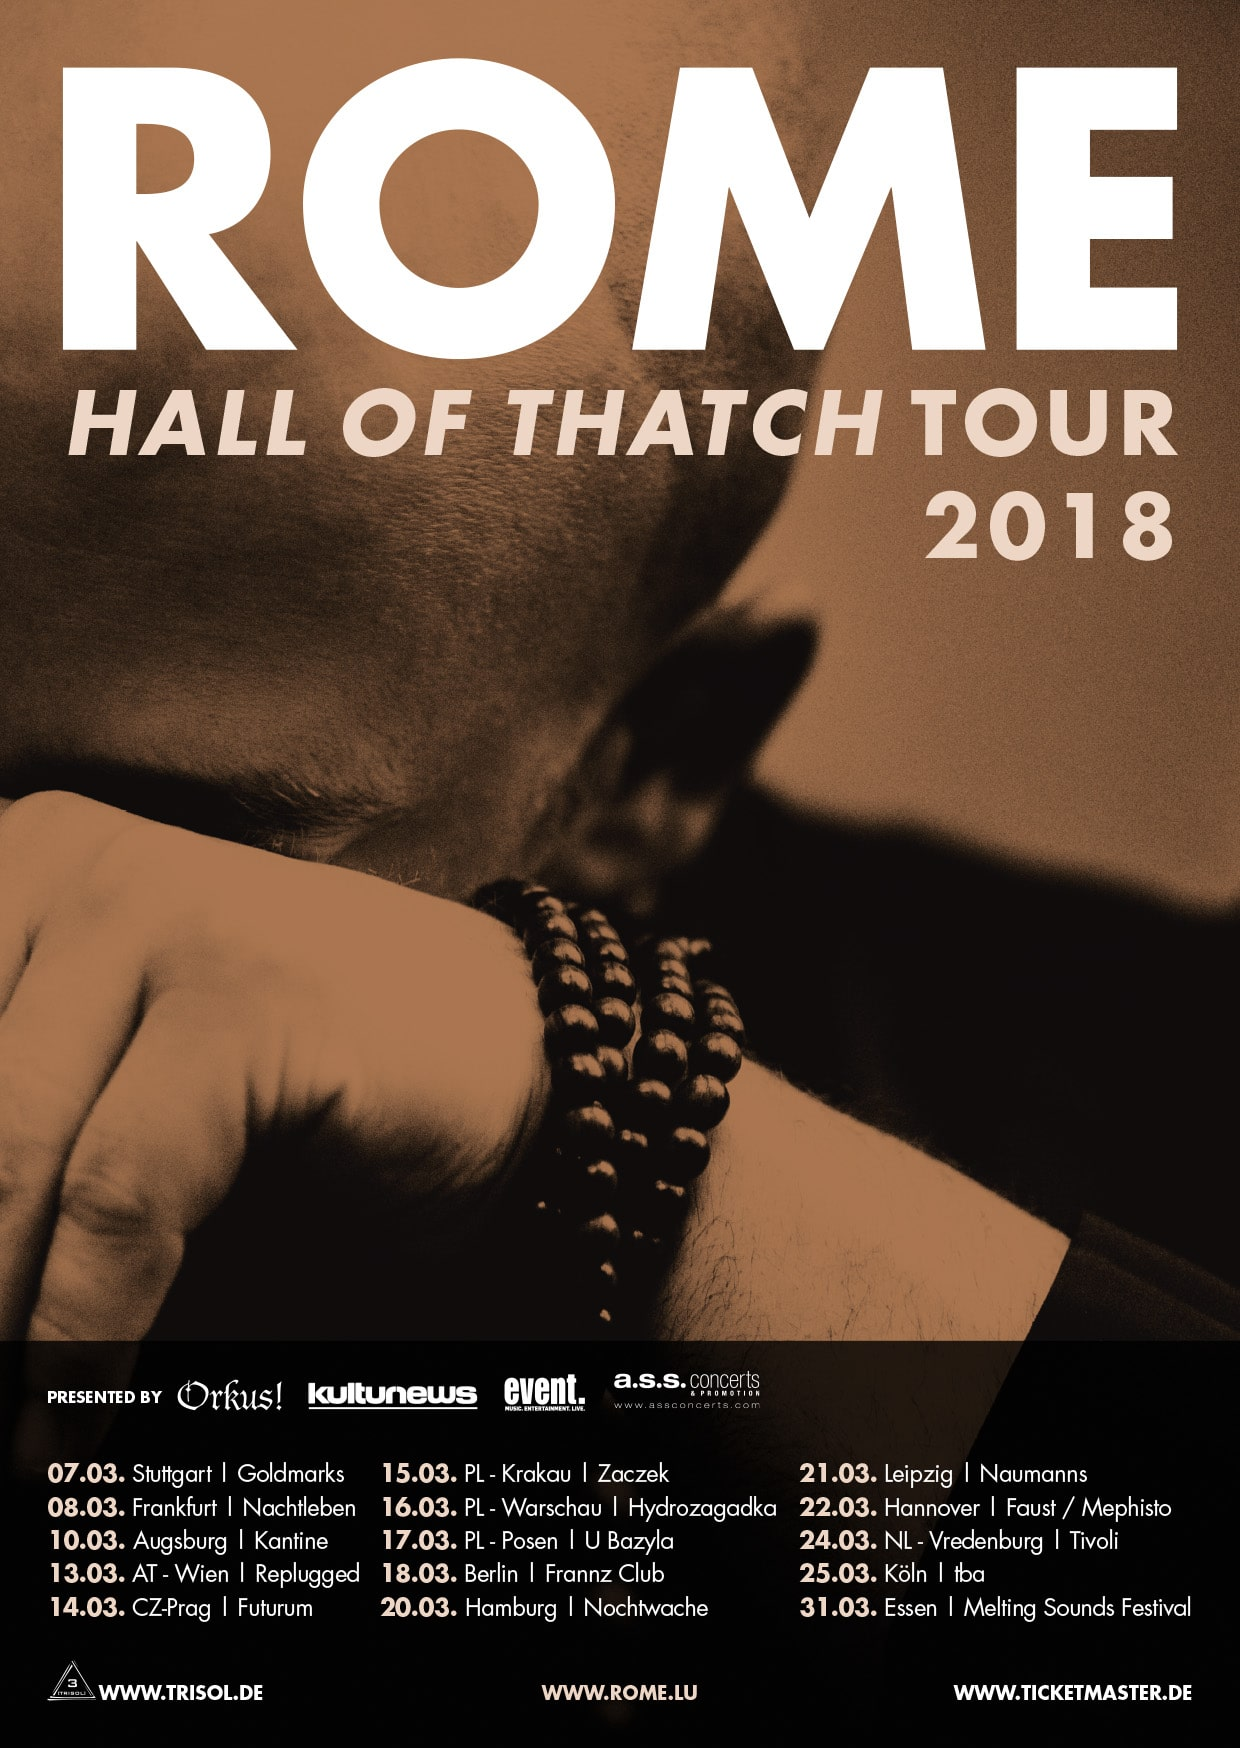 ROME (lux) live in Vienna!